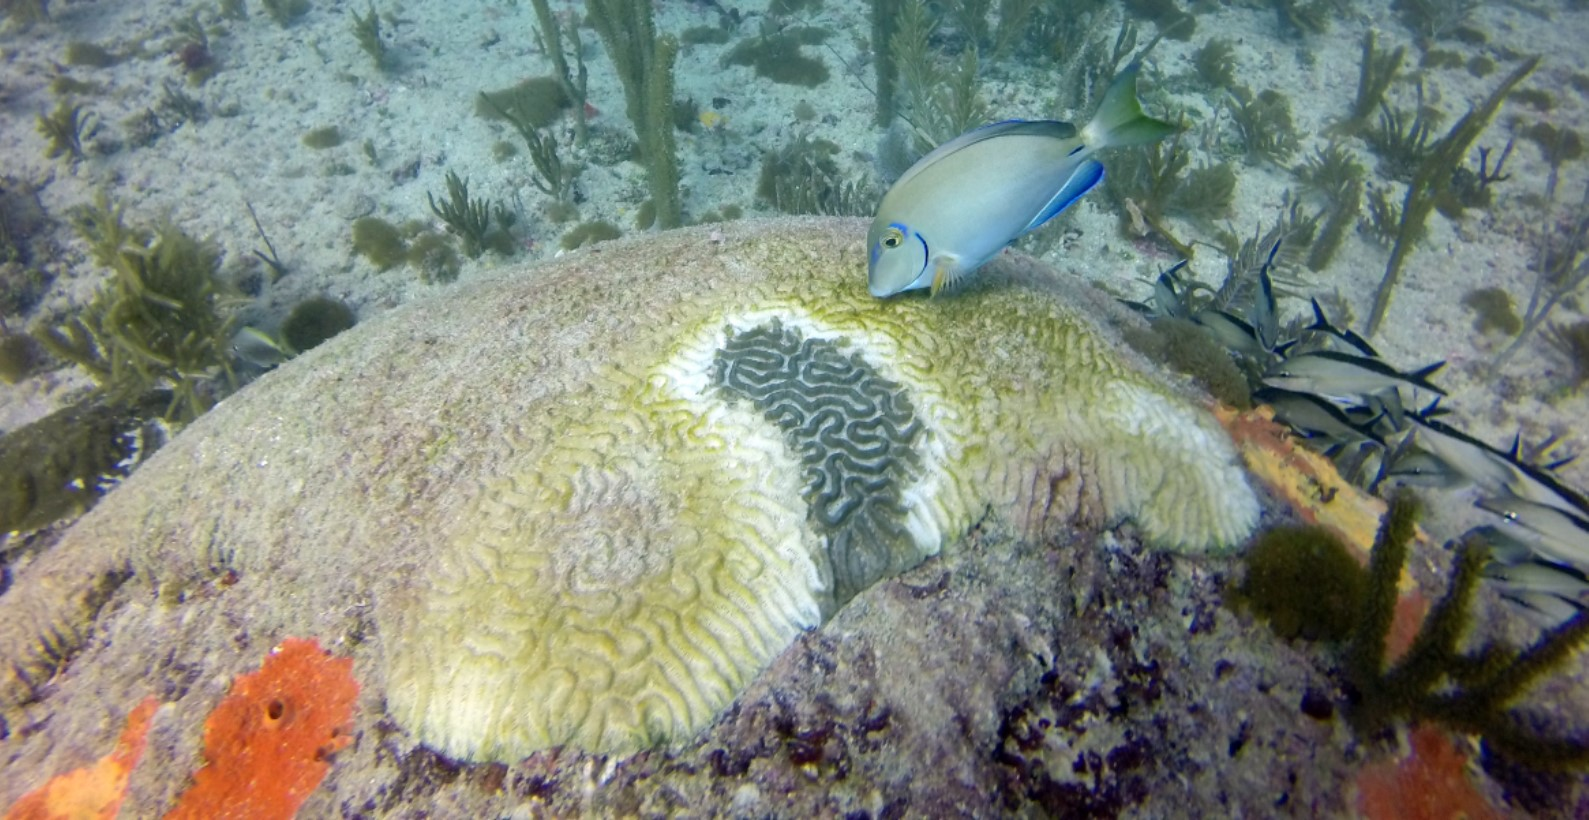 A symmetrical brain coral (Pseudodiploria Strigosa) observed with white-plague like disease in Broward County.